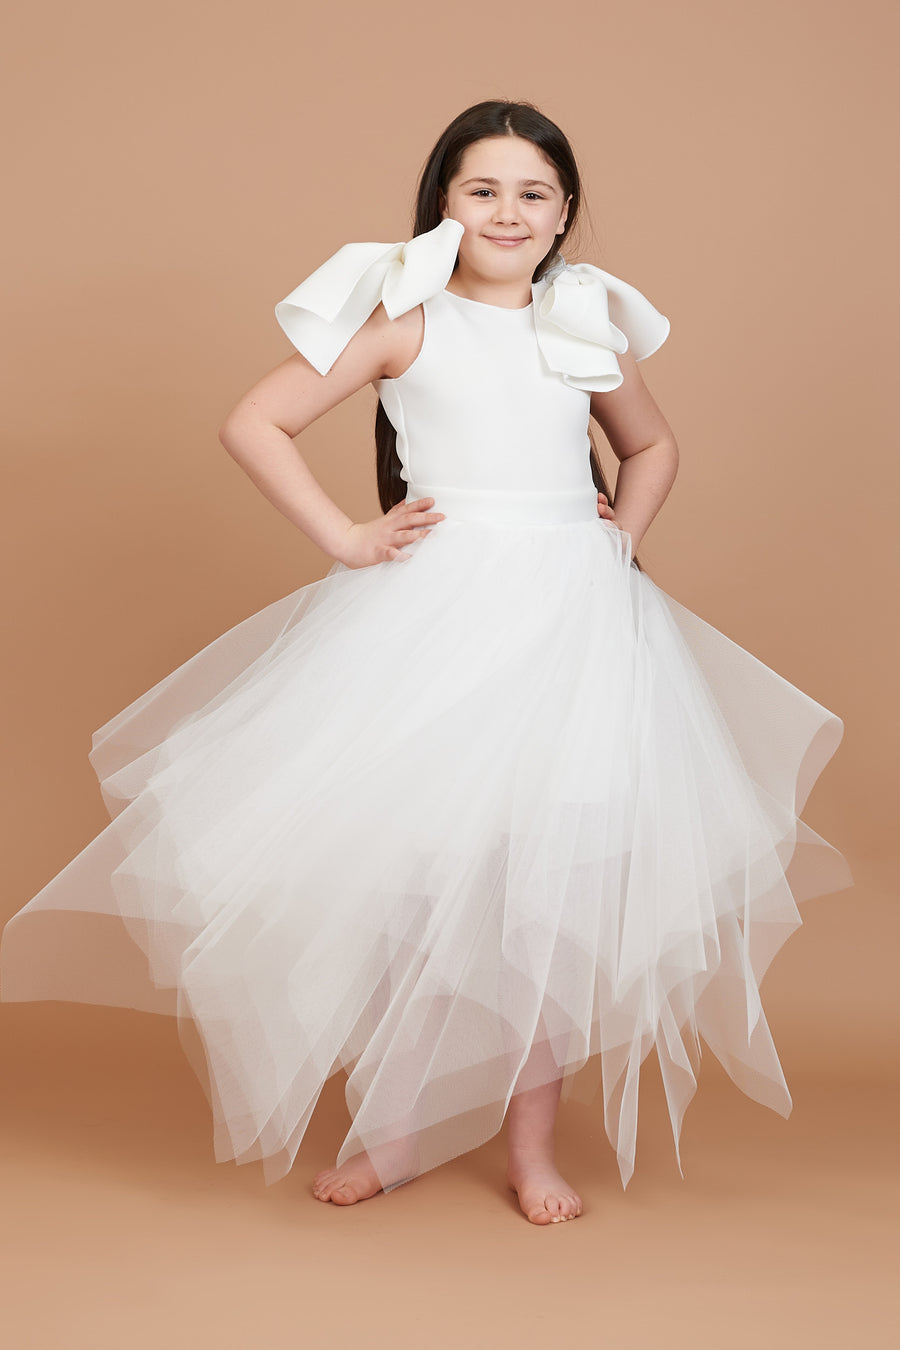 Daisy Choppy Tulle Dress